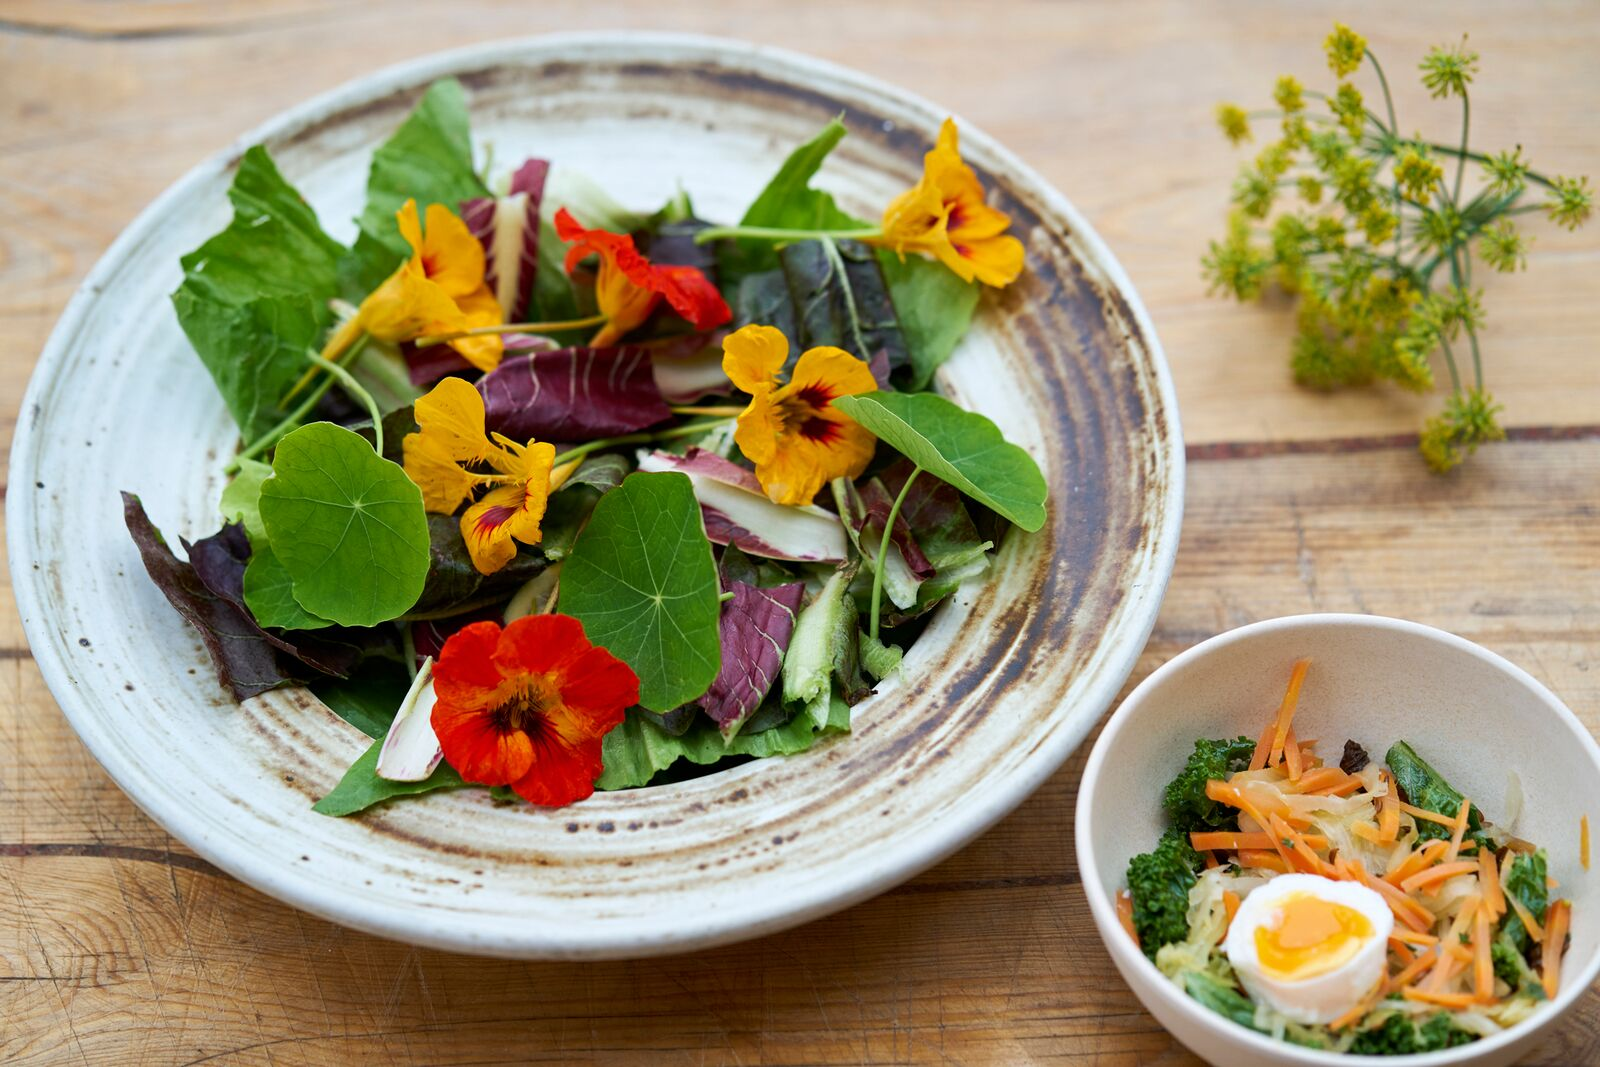 Early spring-salad with eatable flowers (nasturtium), kimche and sunny boiled eggs. Photo: Alexander Benjaminsen.